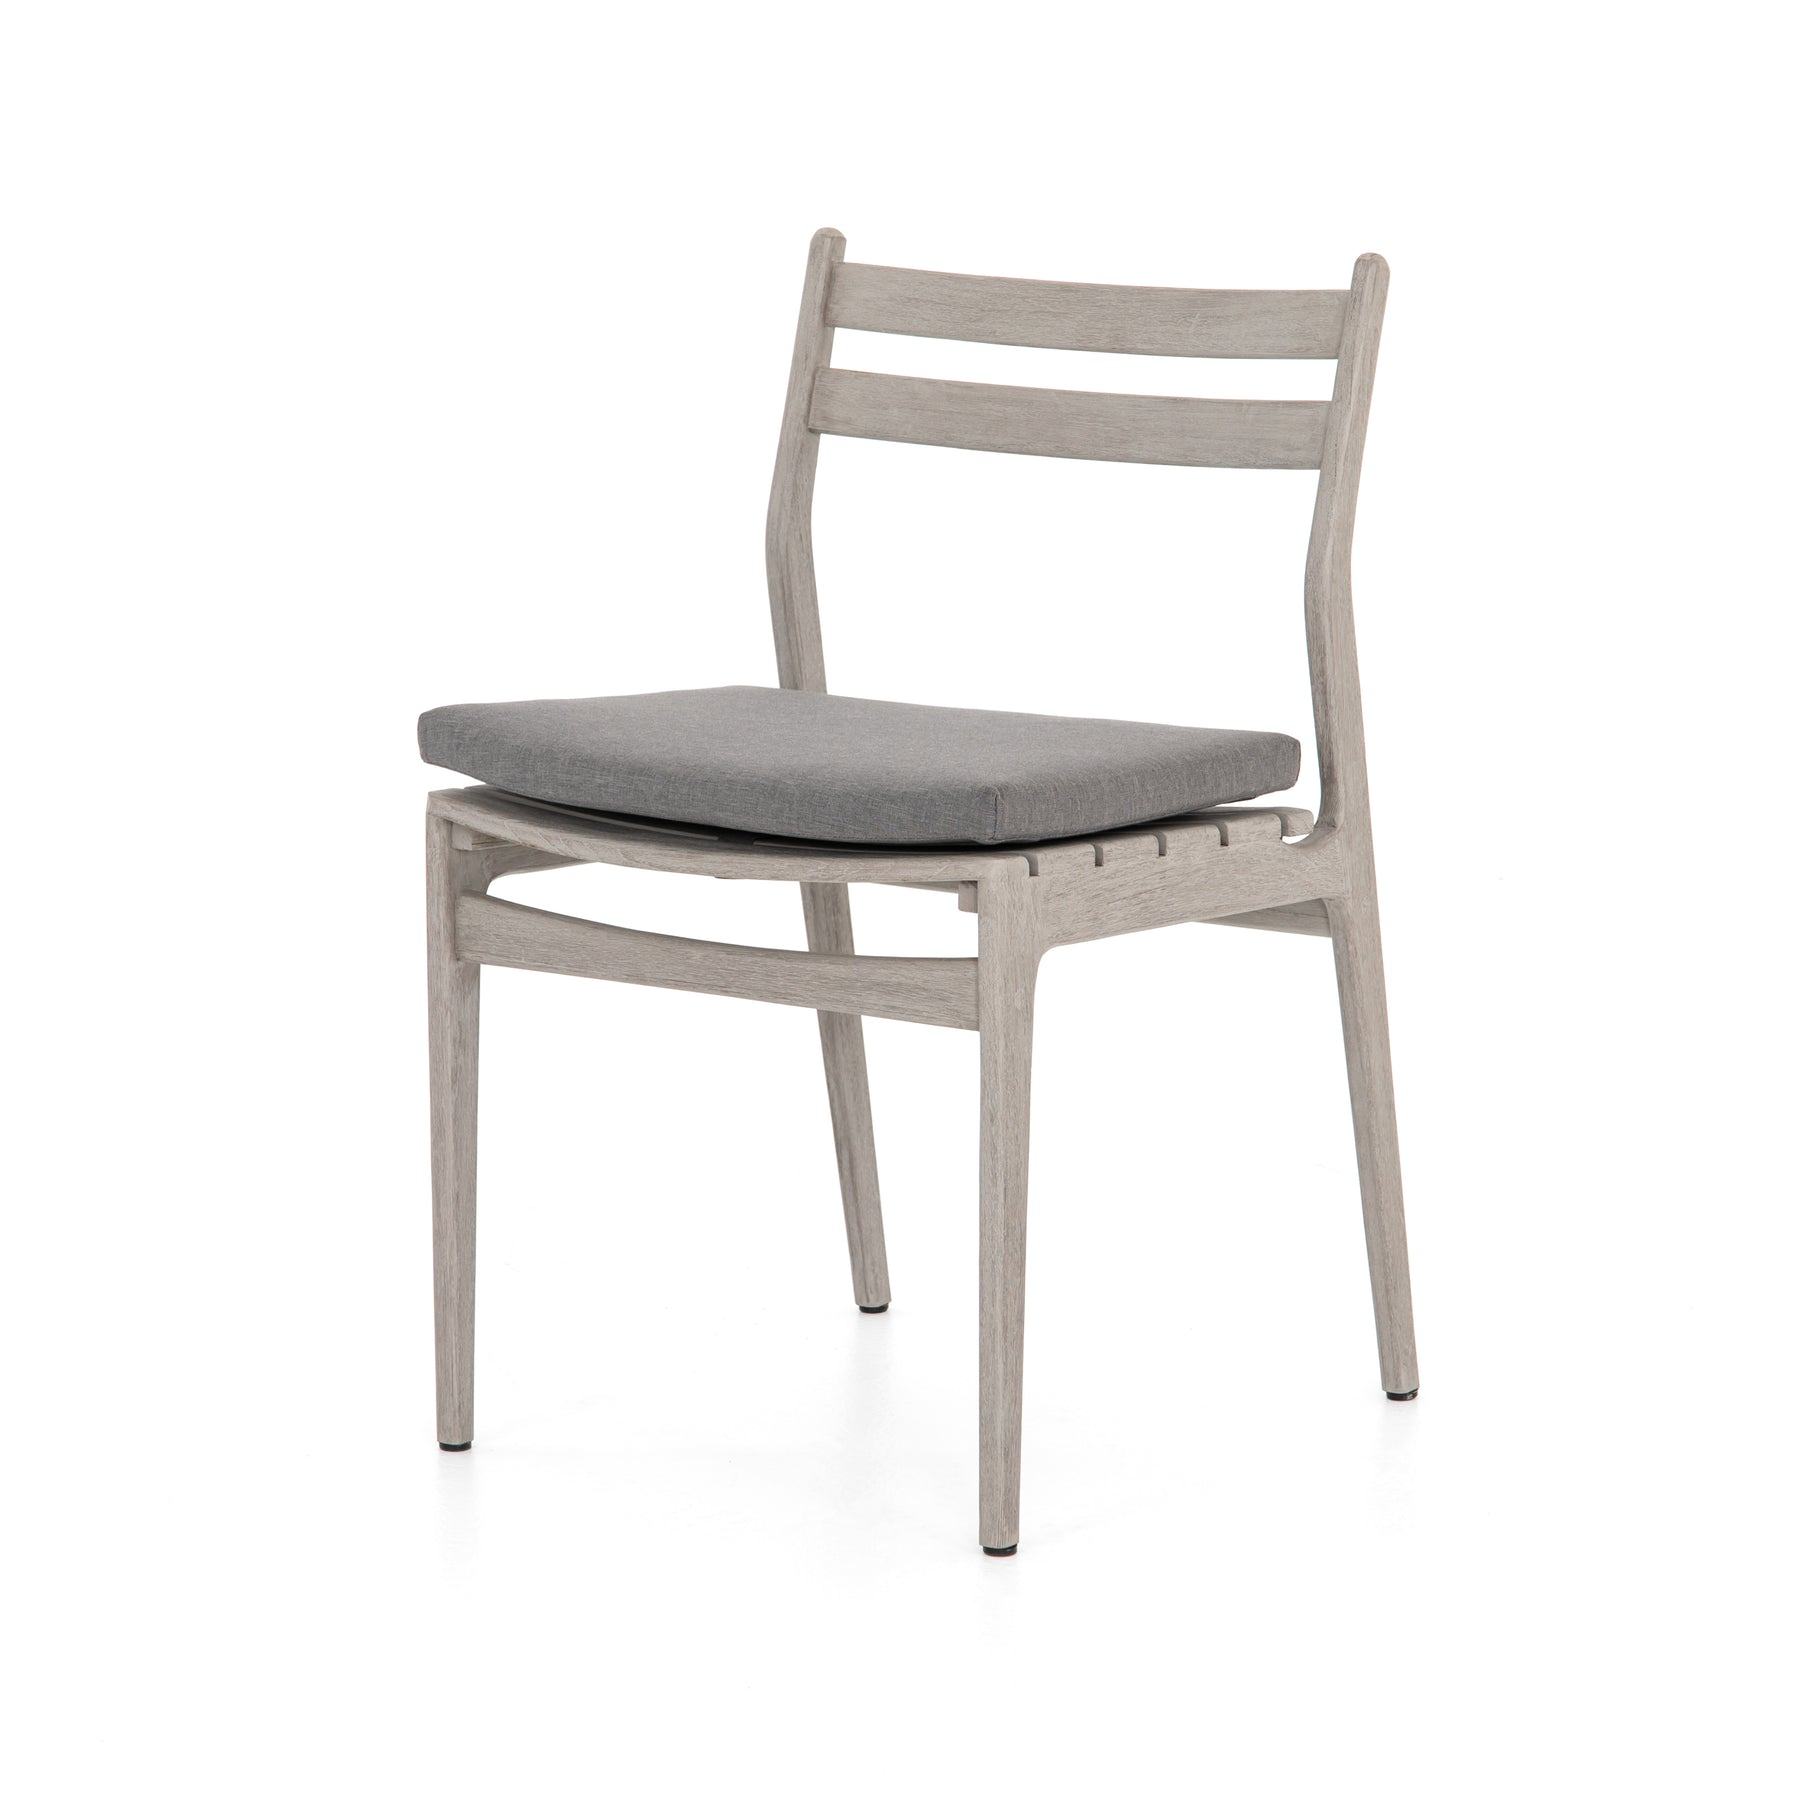 Swell Anthony Grey Teak Outdoor Dining Chair Charcoal Bright Pdpeps Interior Chair Design Pdpepsorg